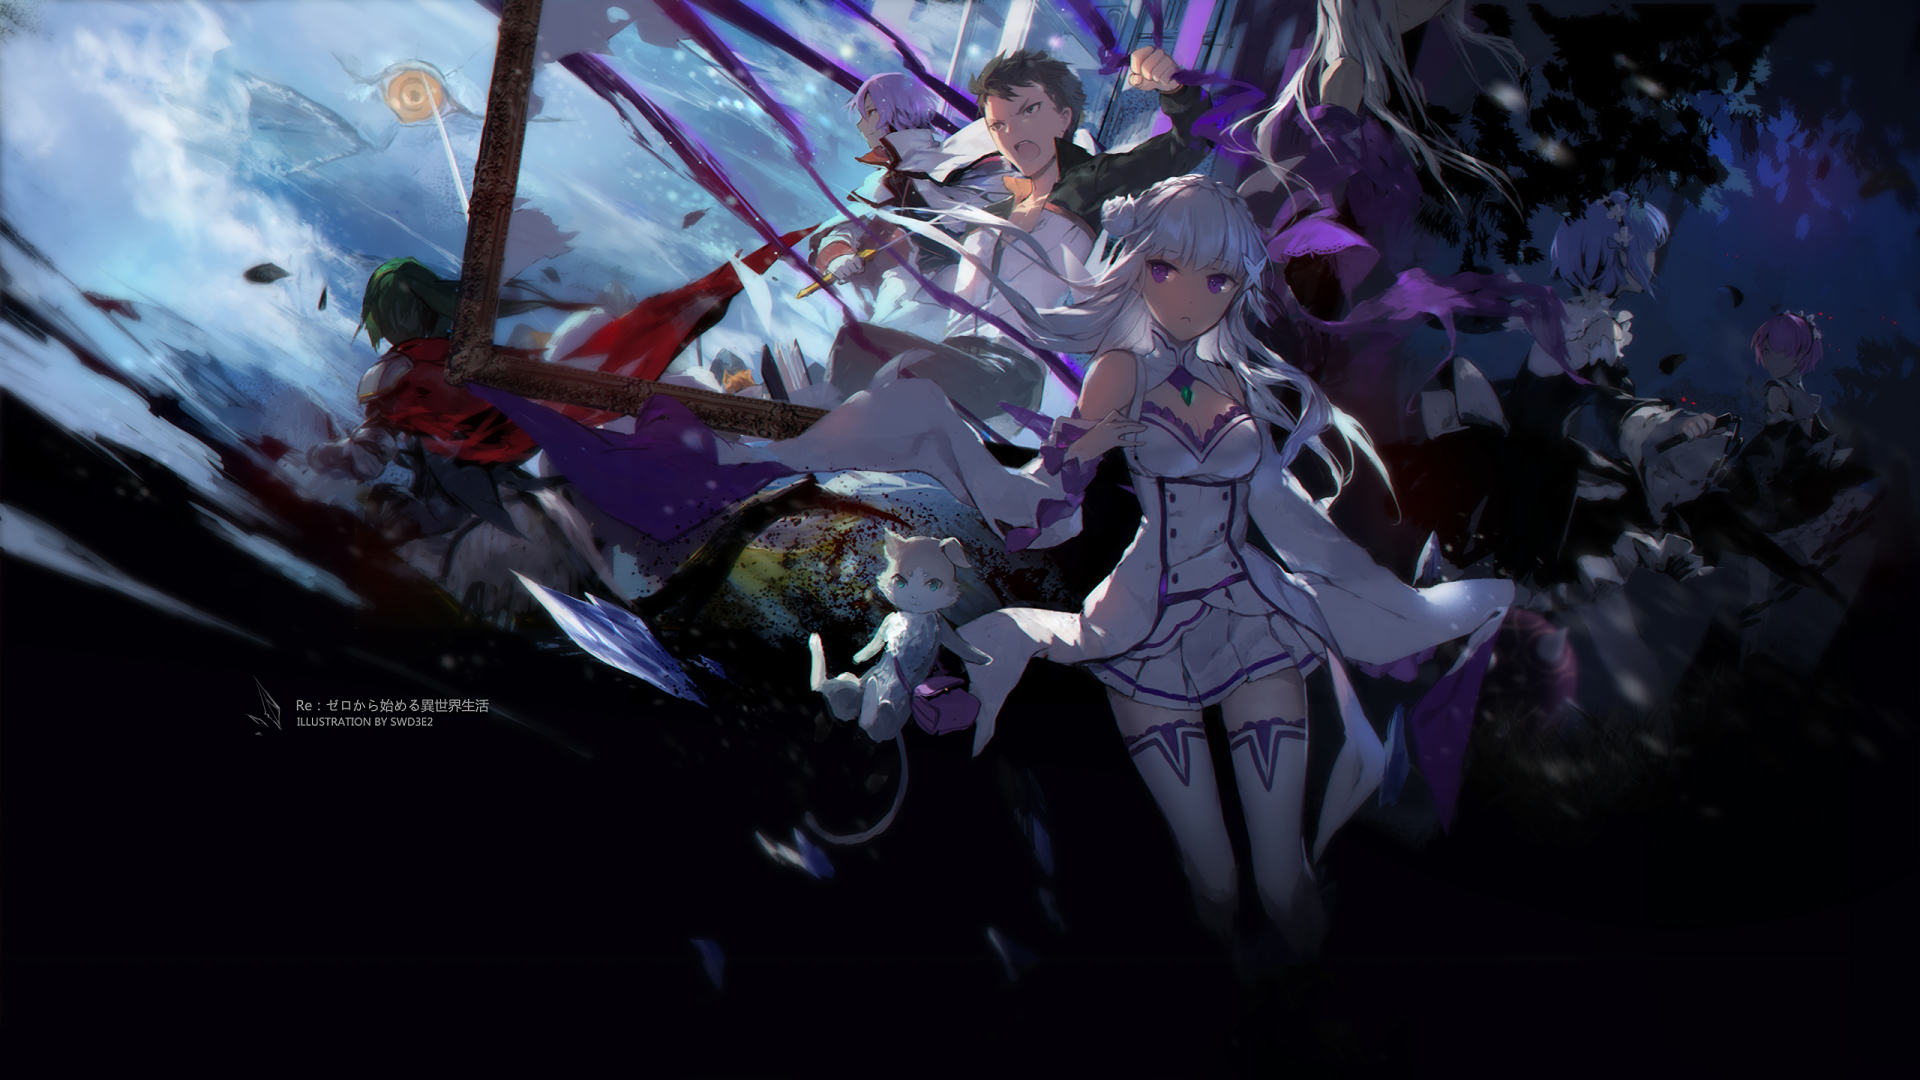 Anime Re Zero Starting Life In Another World Emilia Re Zero Re Zero Pack Re Zero Rem Re Zero Ram Re Zero Wallpaper Anime Wallpaper Hd Anime Wallpapers